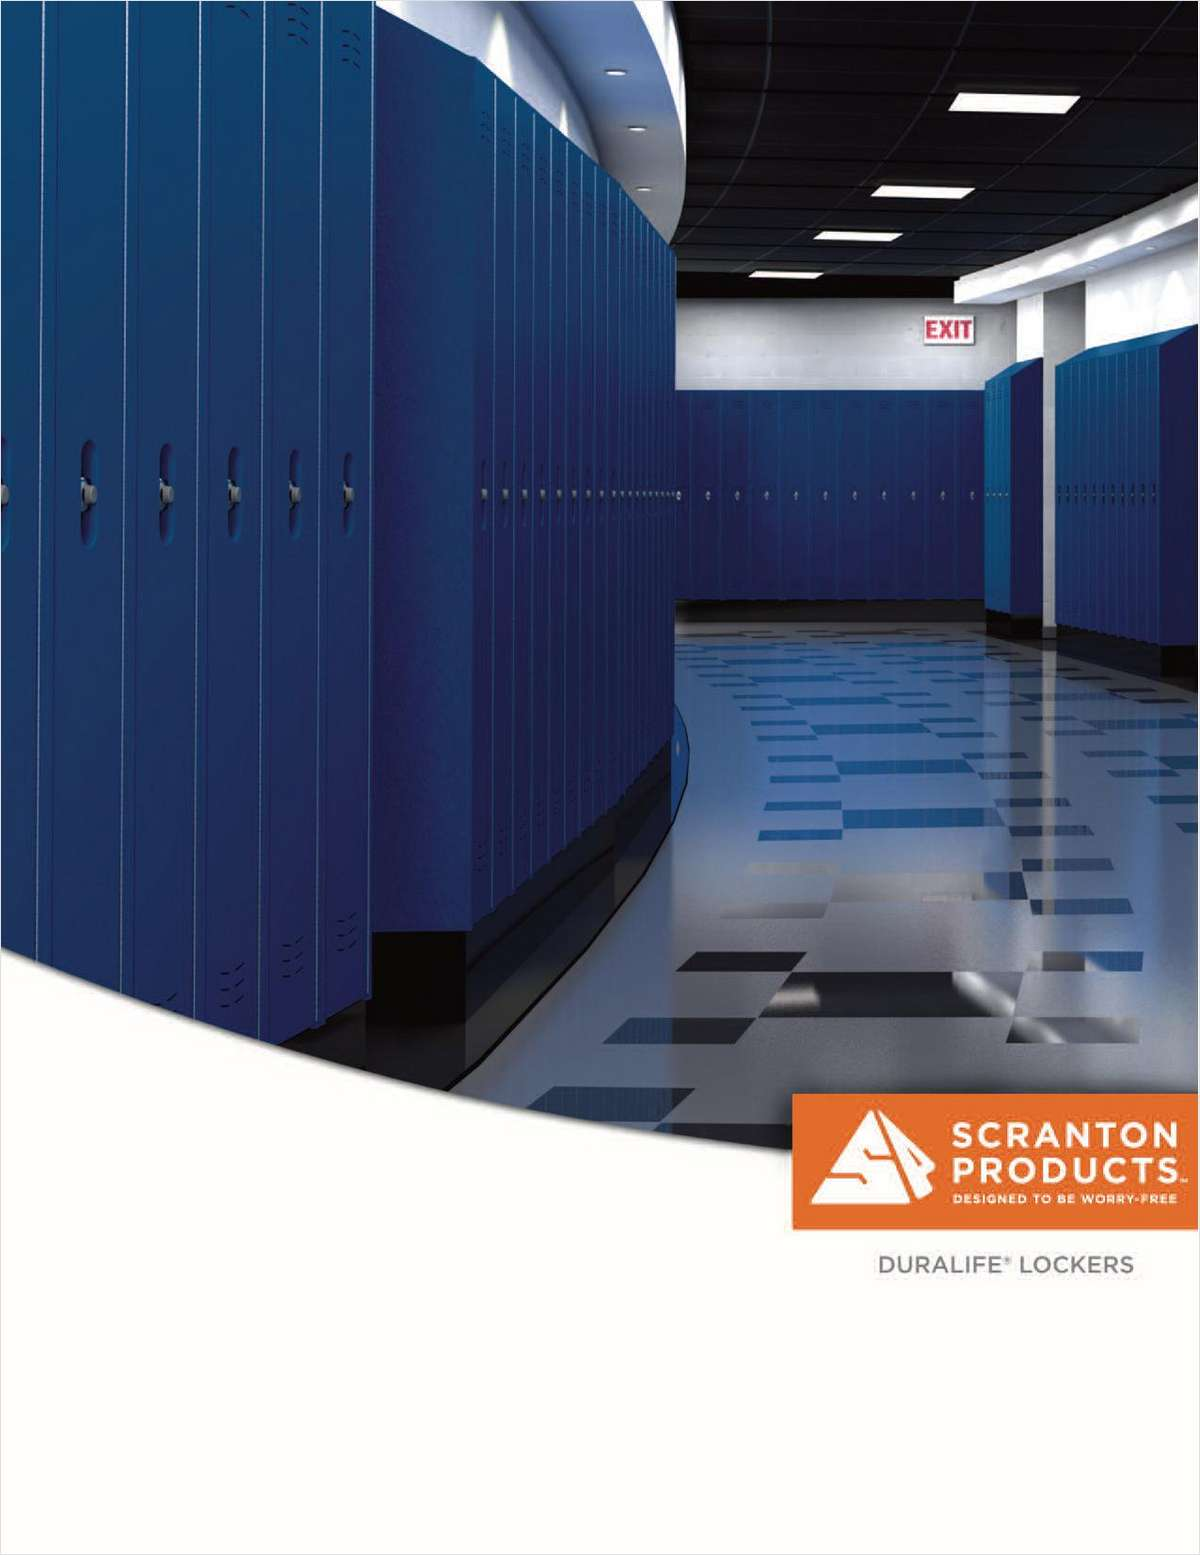 The TRUE Cost of Ownership on School Lockers - How Much Does Saving Money Up Front Cost Your School?